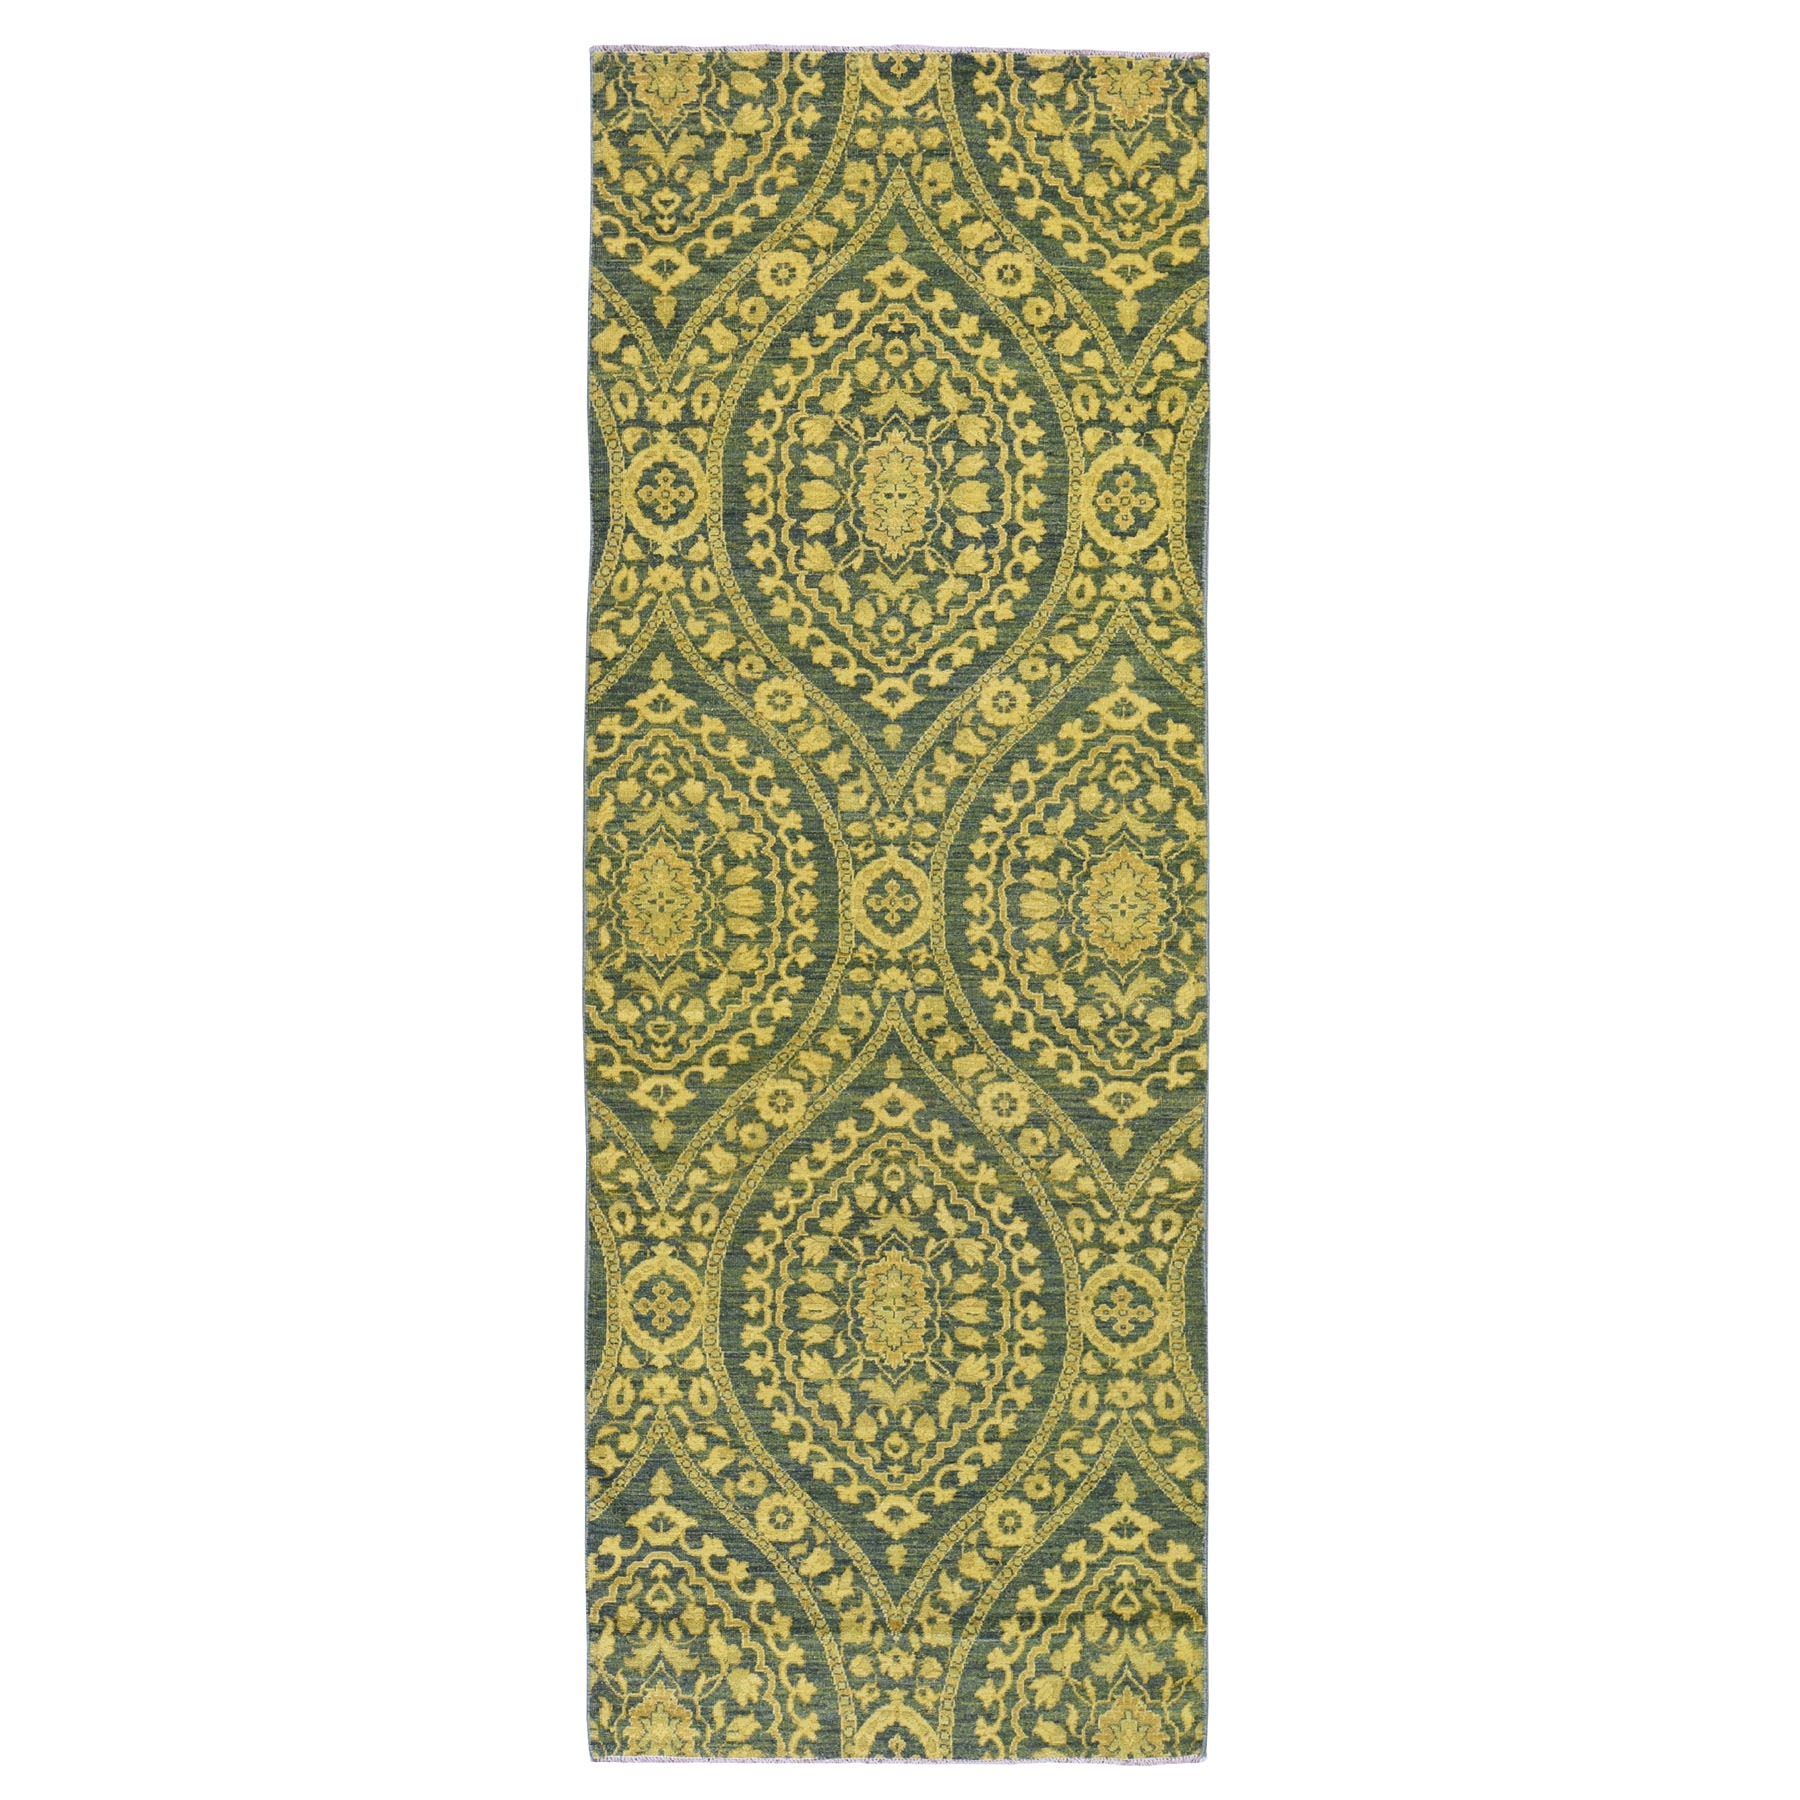 Agra And Turkish Collection Hand Knotted Green Rug No: 0194744